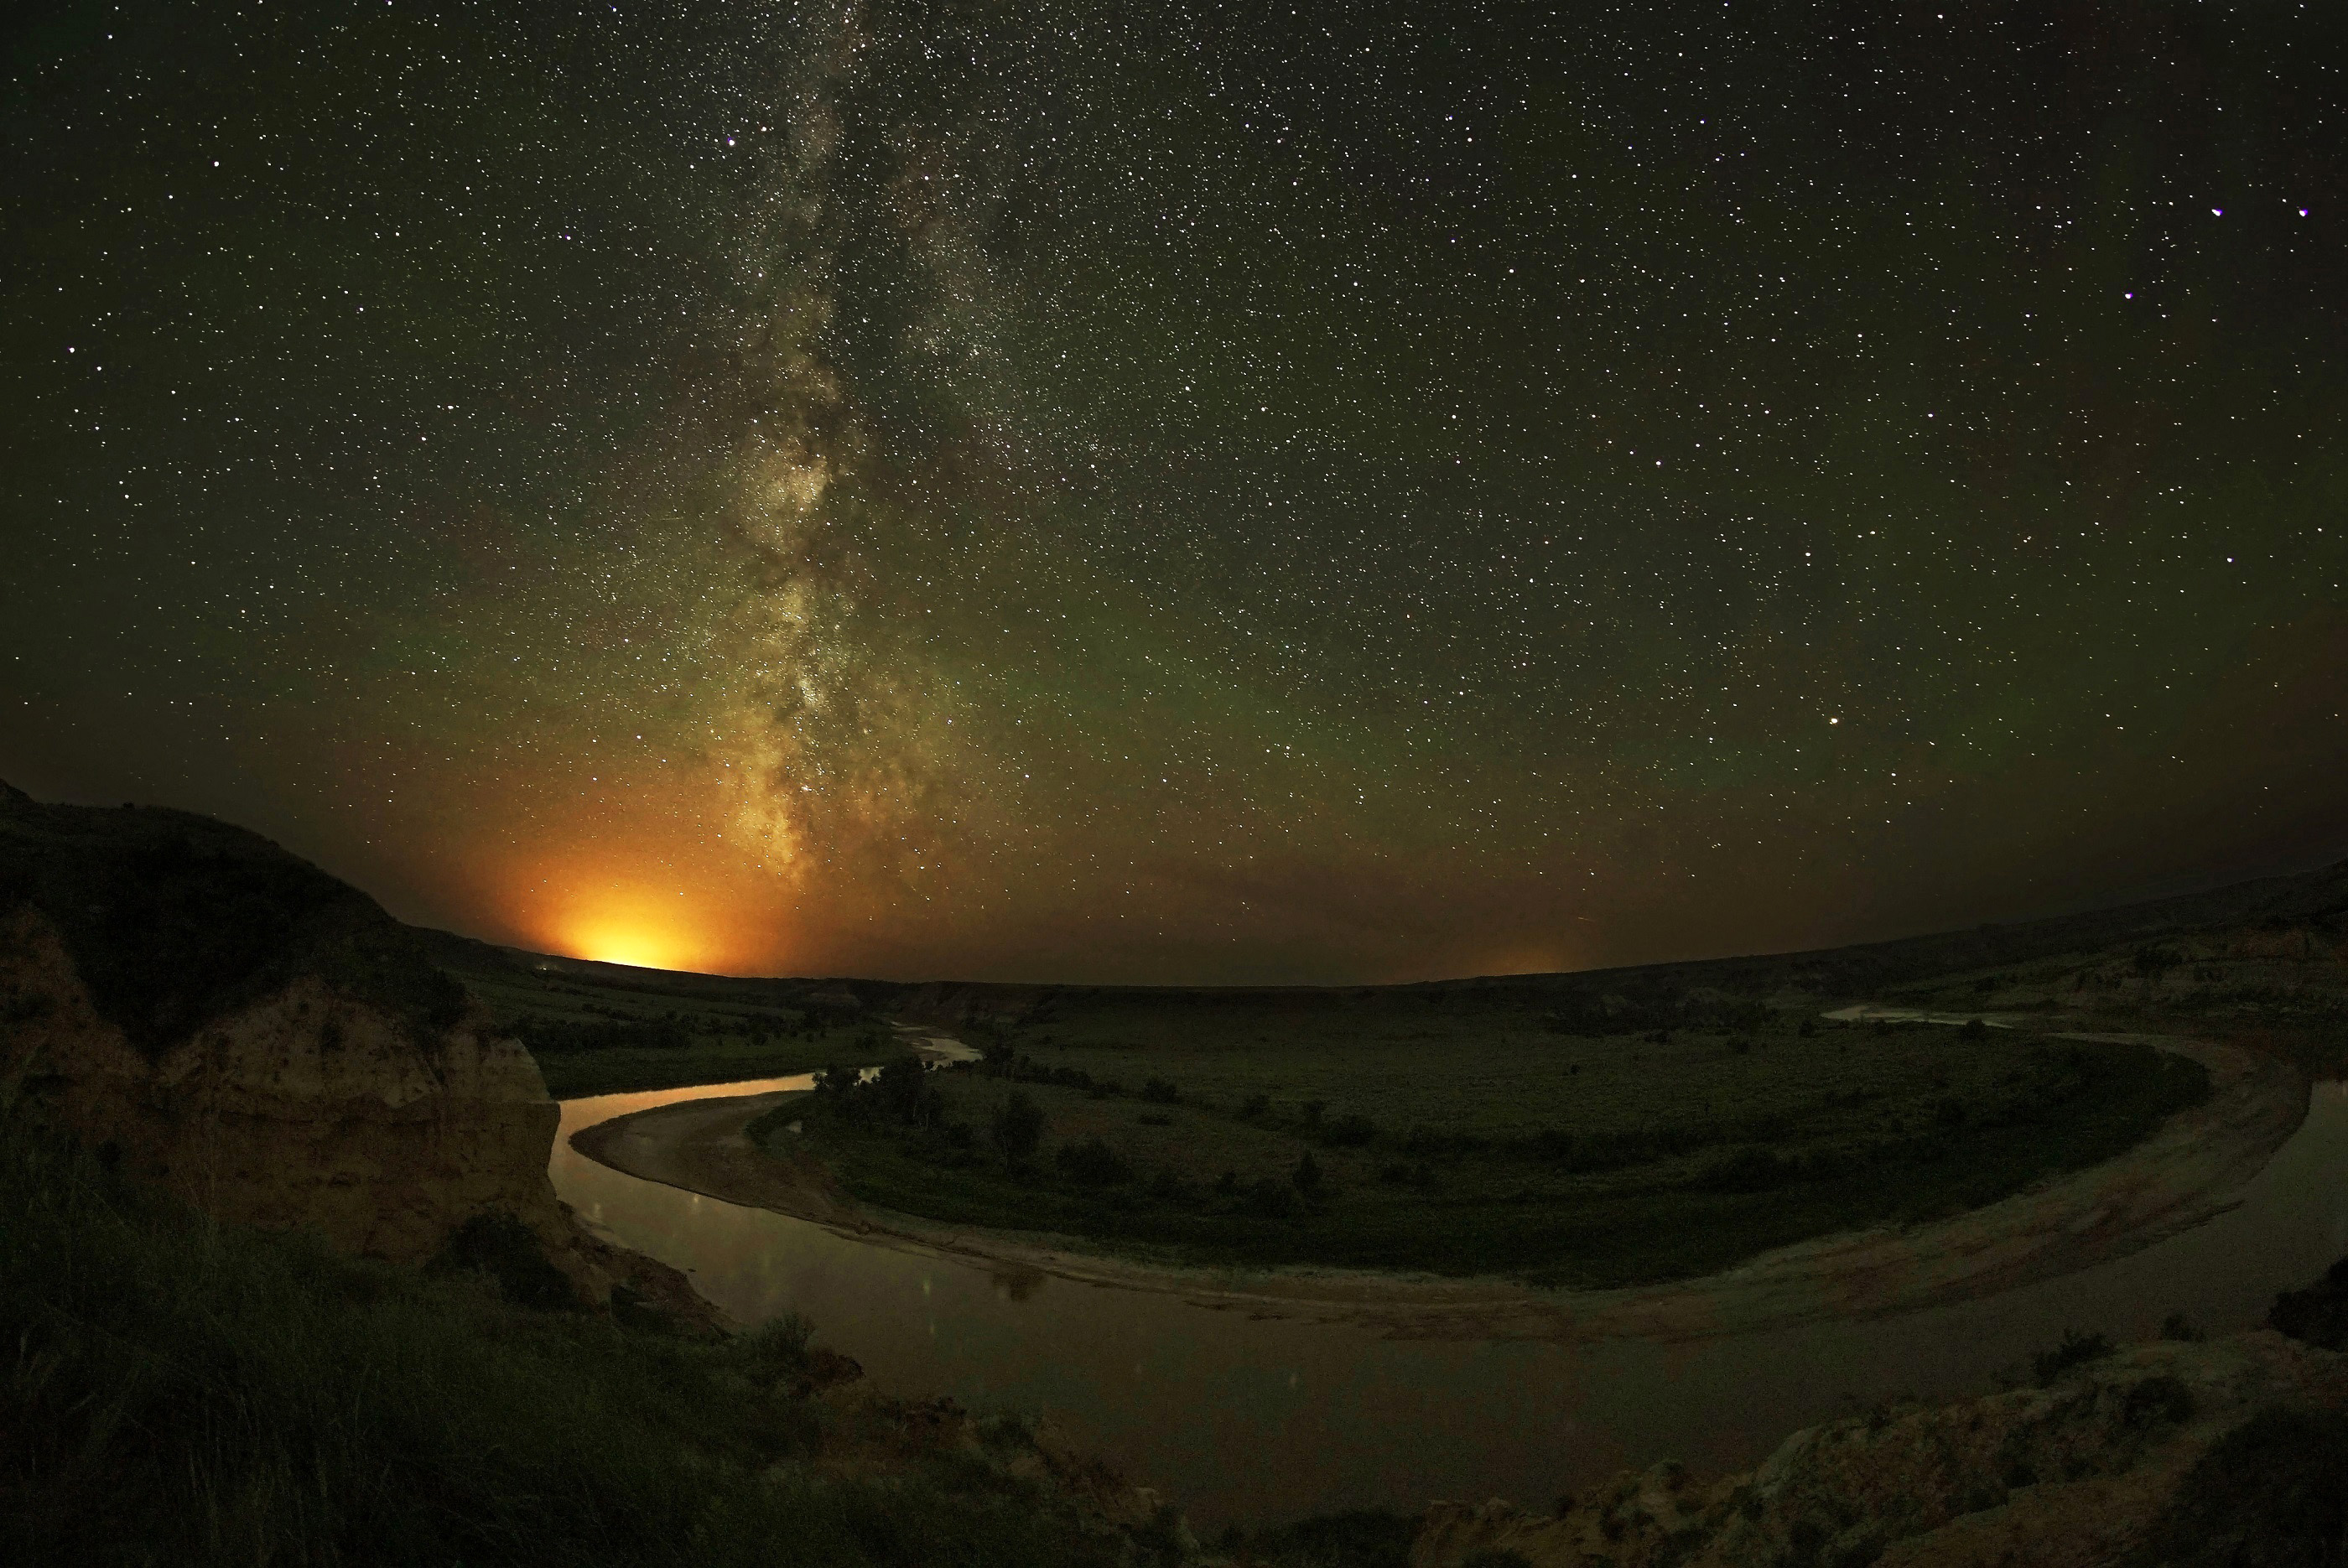 Milky Way Galaxy with Stars and night landscape image